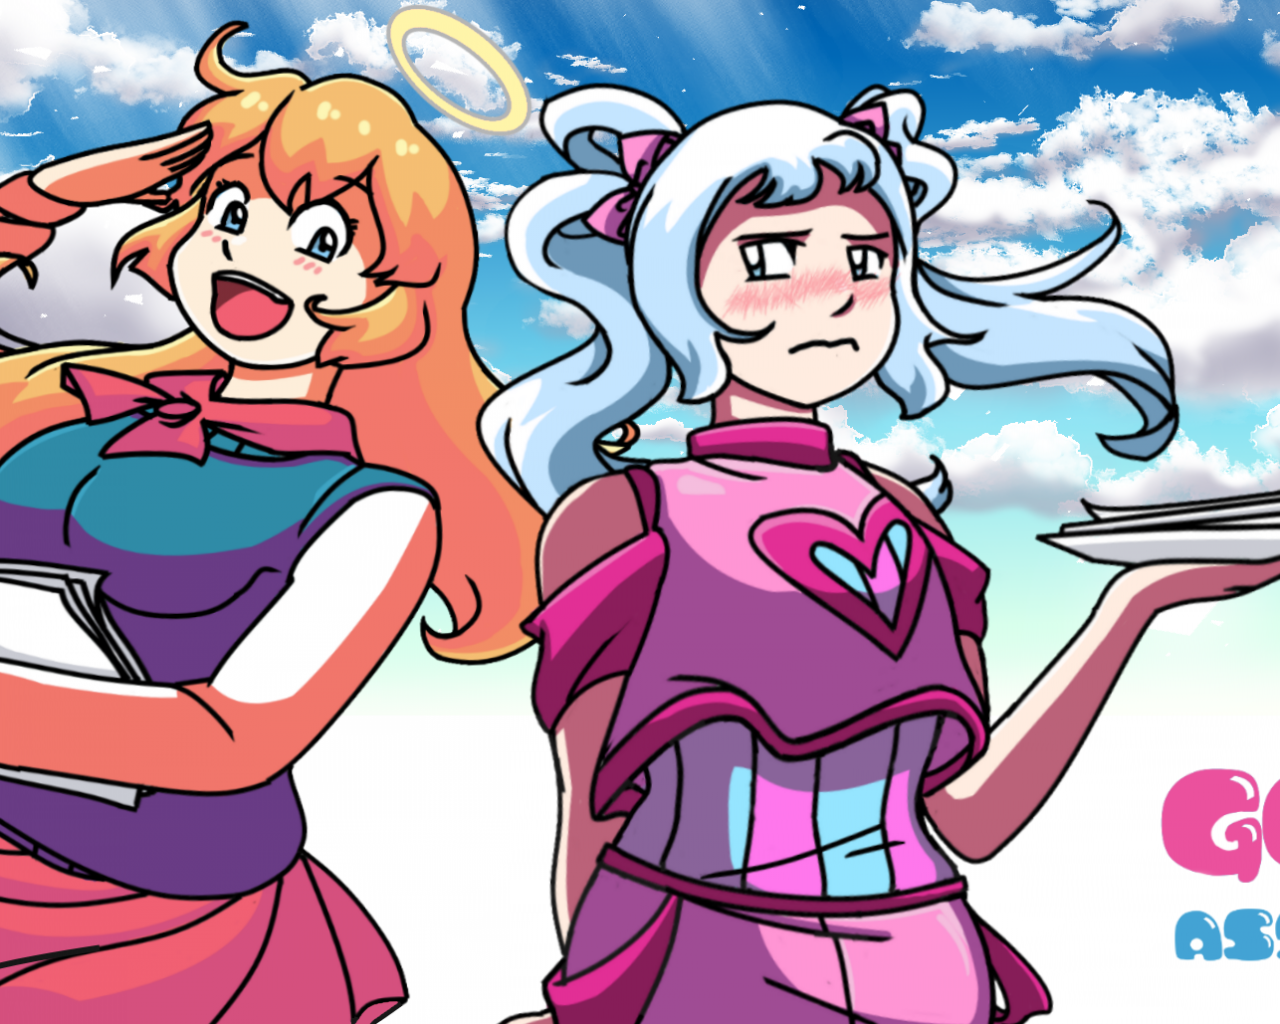 Preview Image 1 for God's Assistant / Kami's Assistant